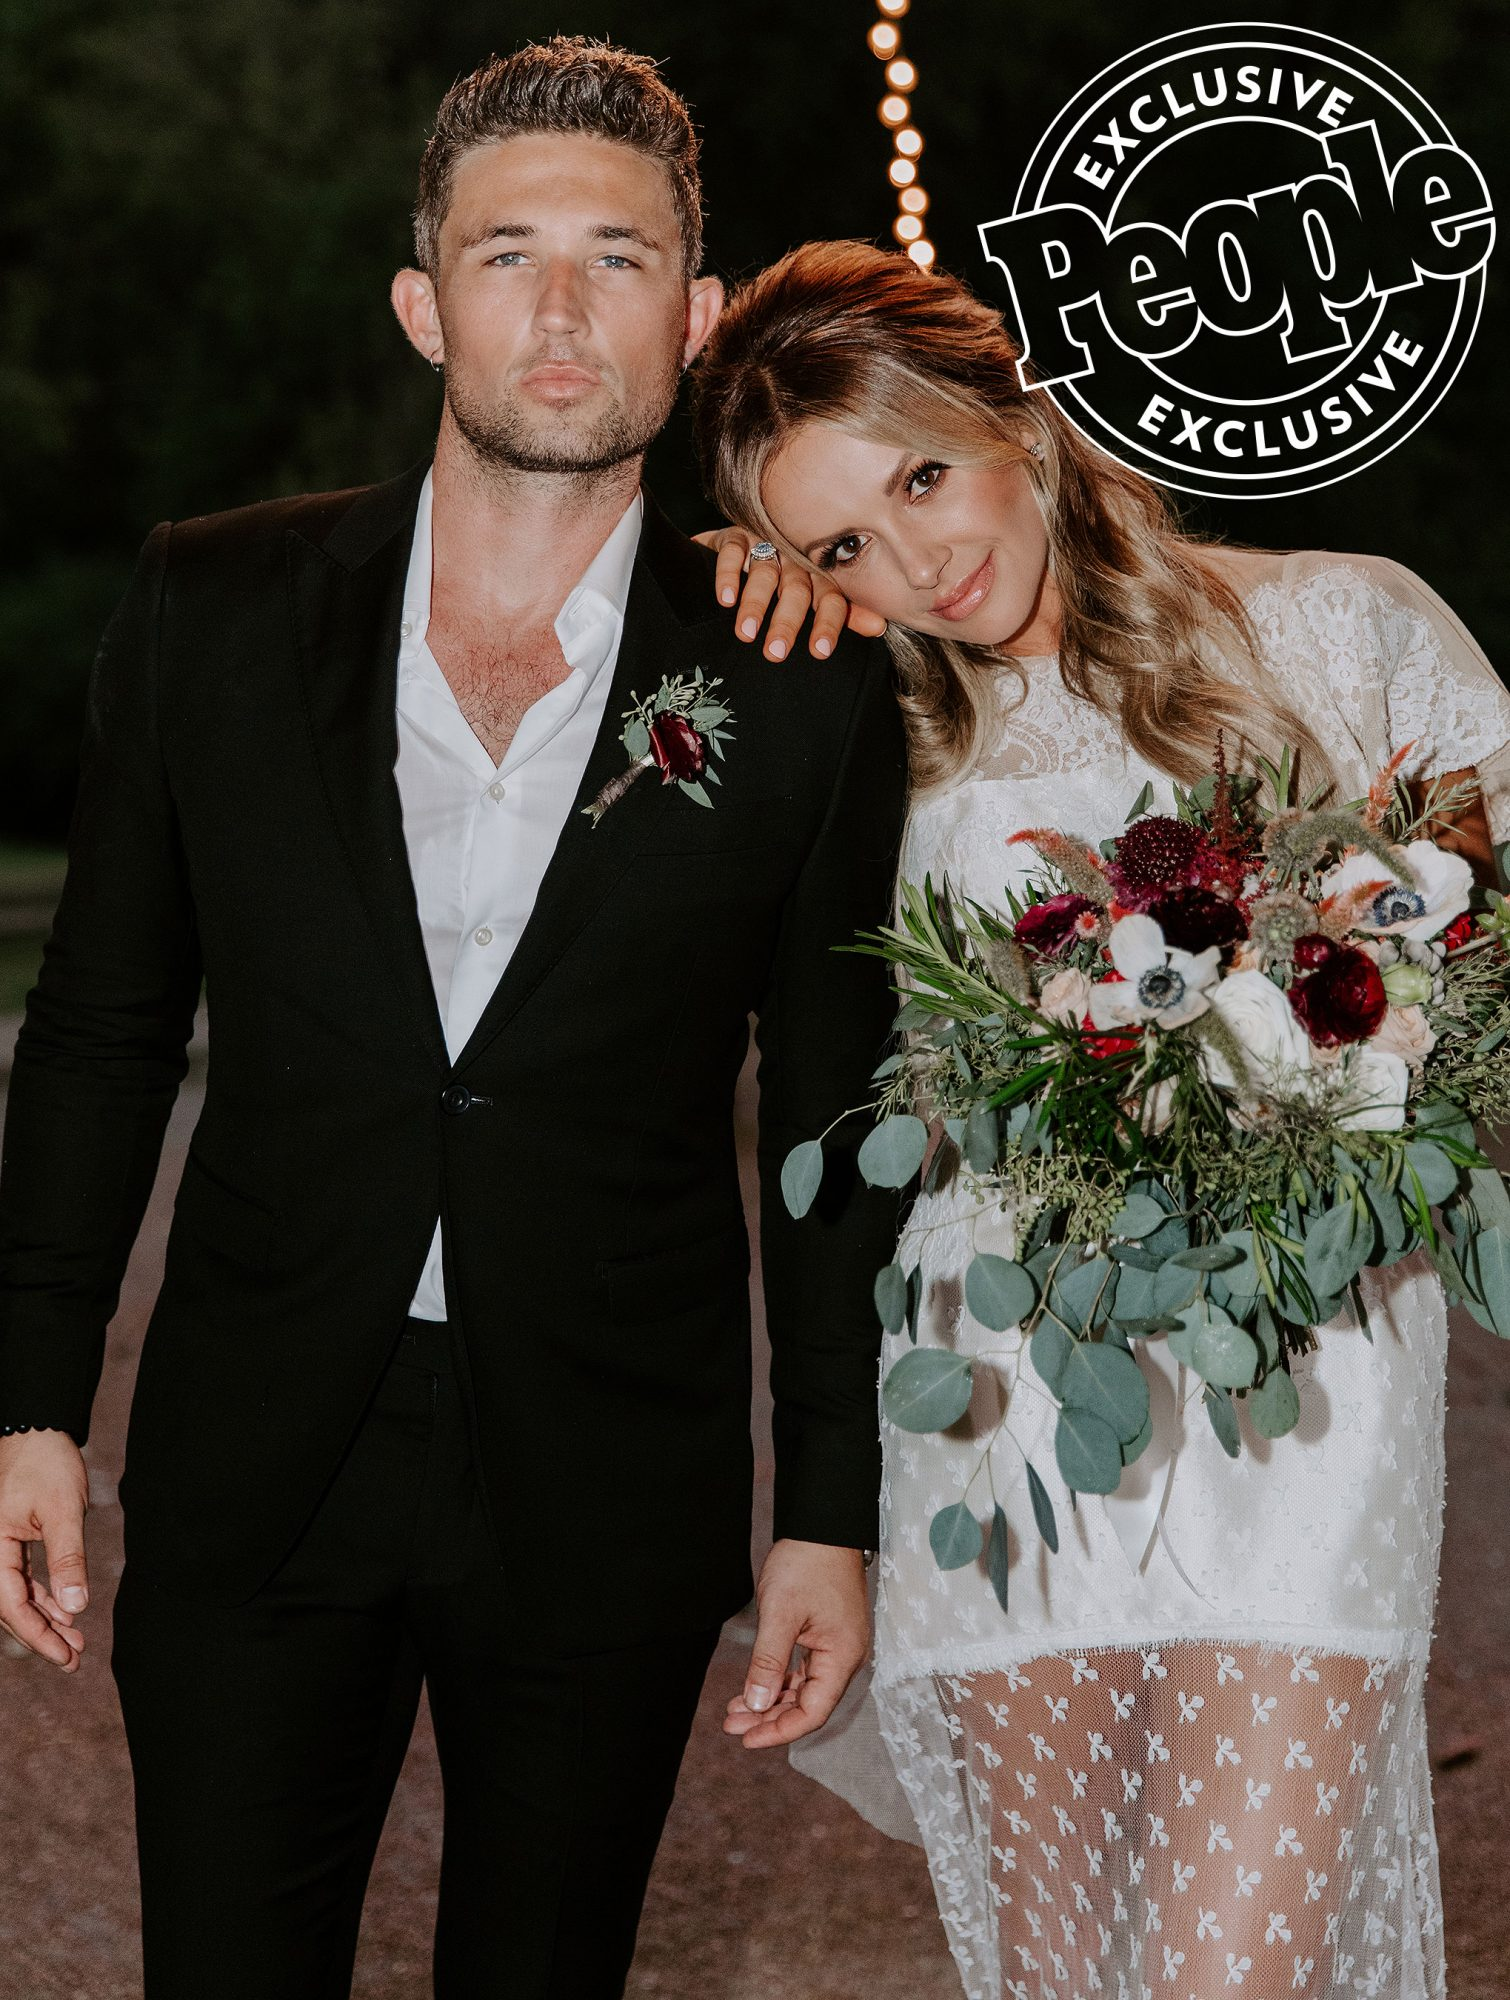 Carly Pearce and Michael Ray wedding